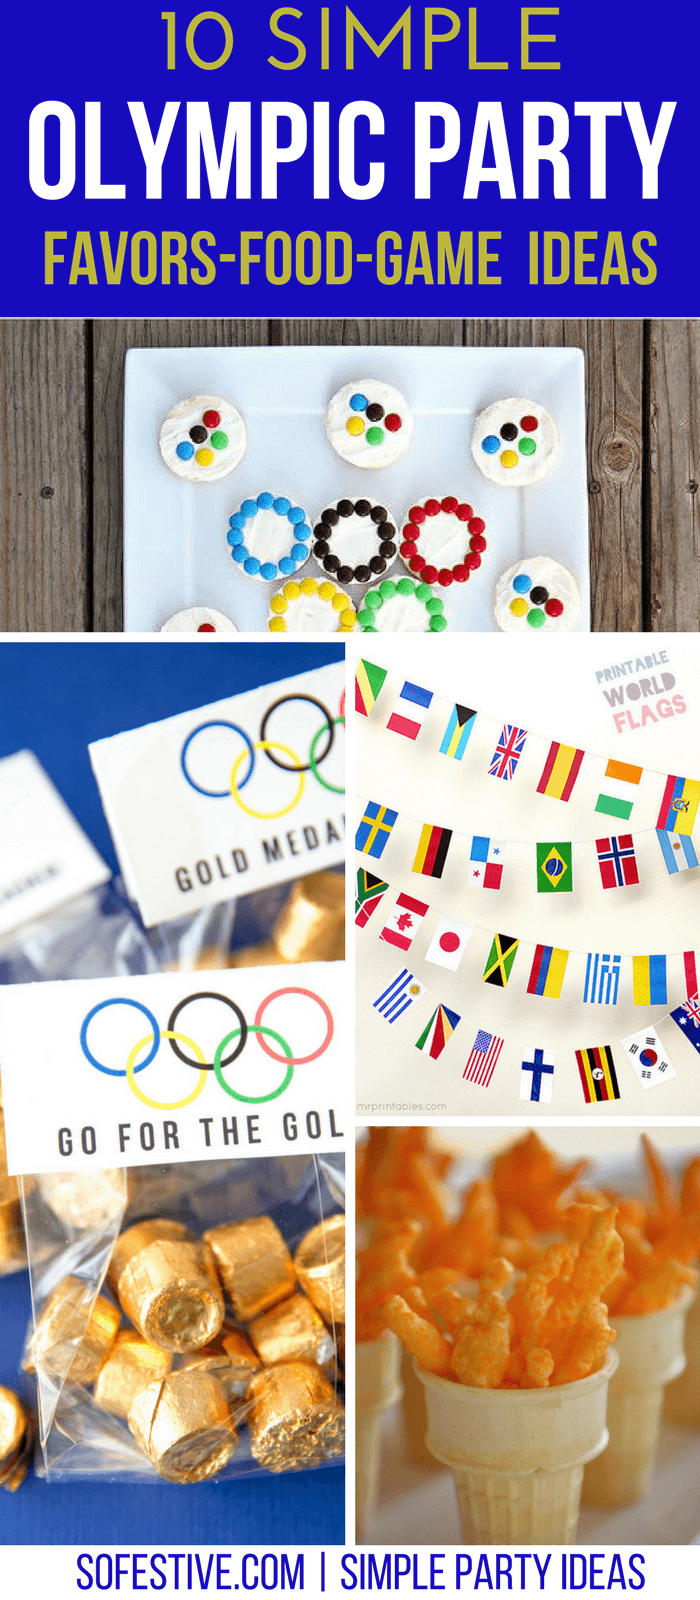 Simple-Olympic-Party-Ideas - Olympic Games